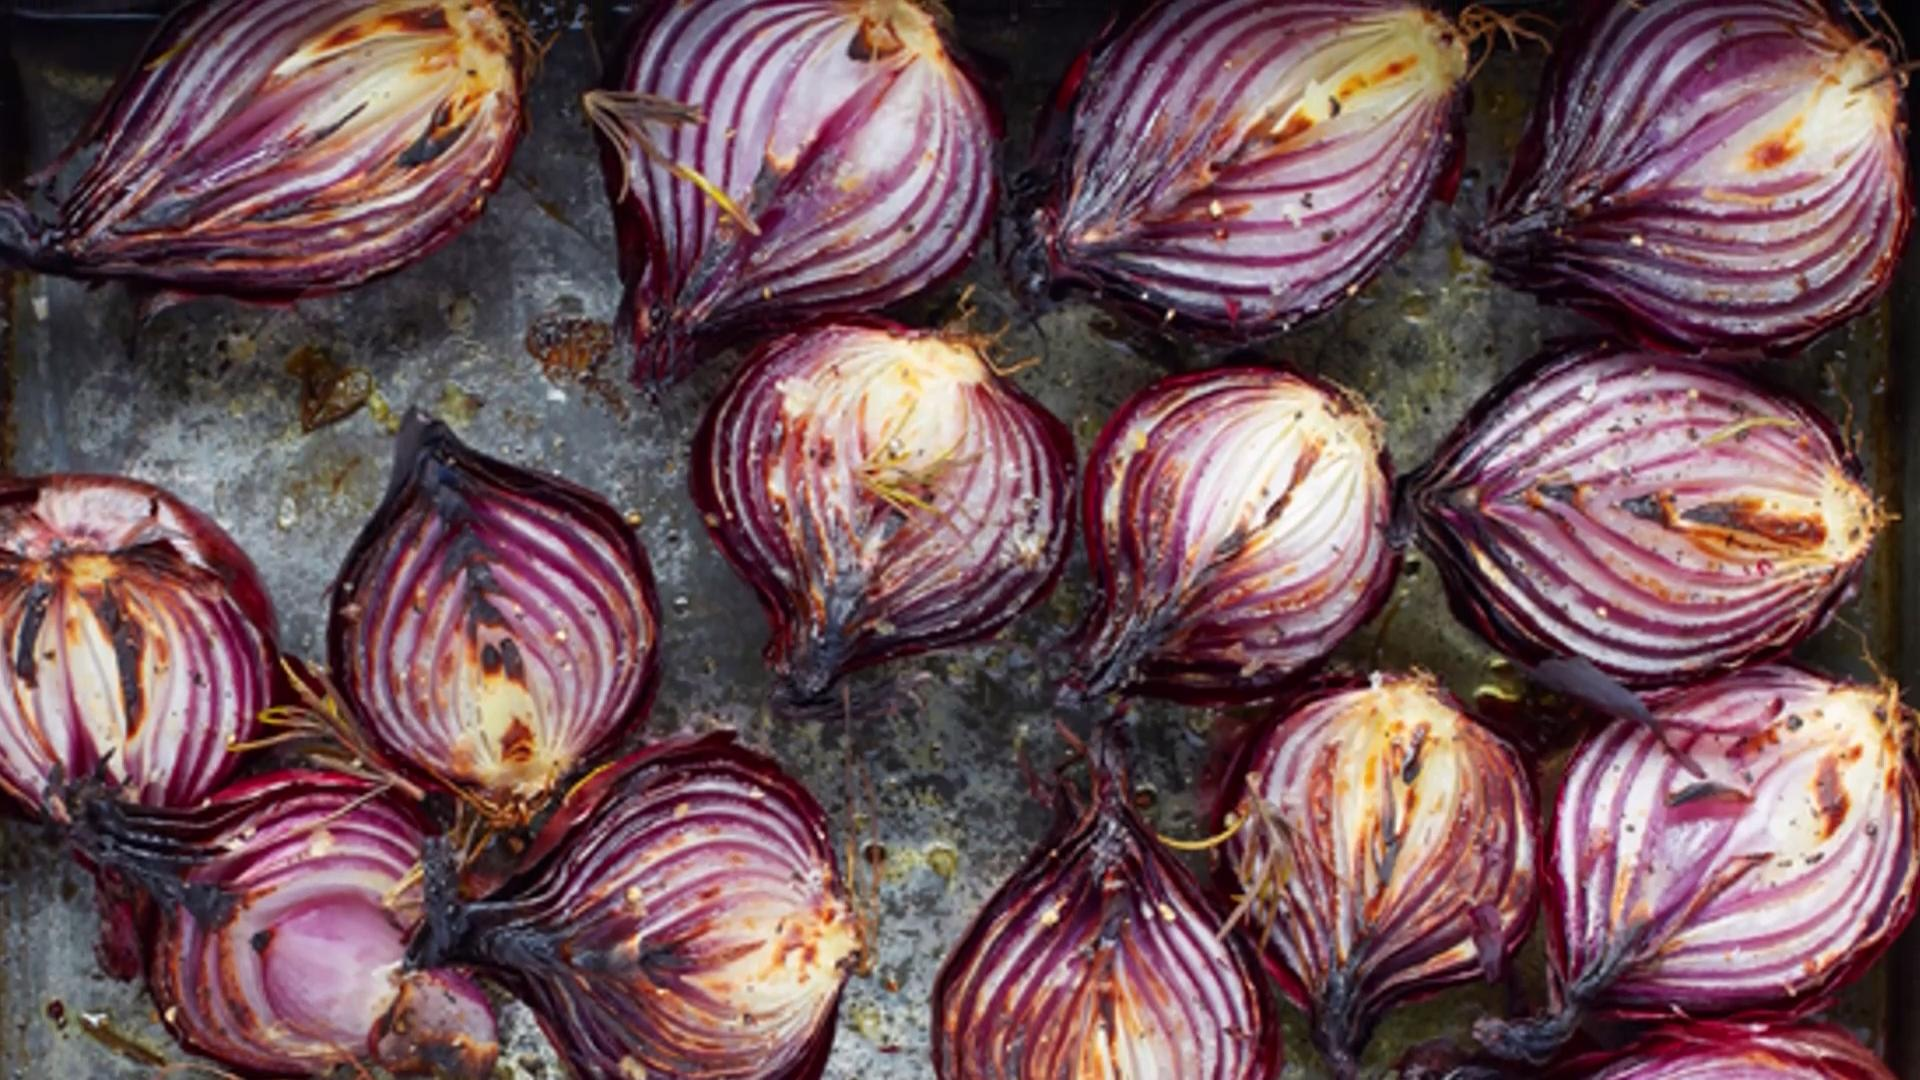 The Biggest Mistake You're Making When Roasting Vegetables, According to This Chef